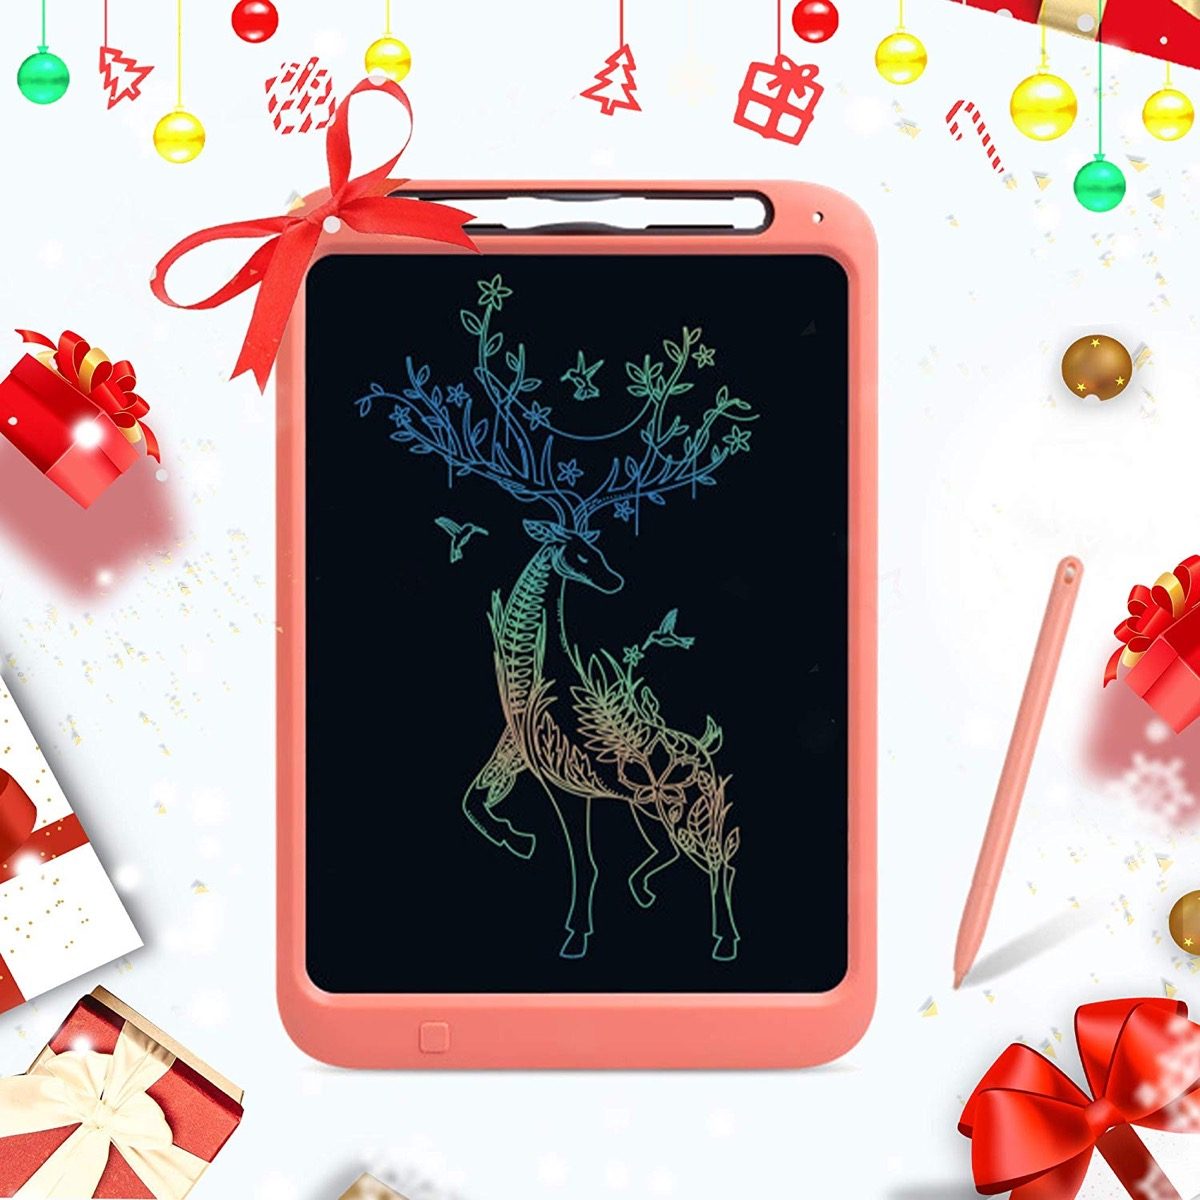 colorful LCD drawing screen for kids